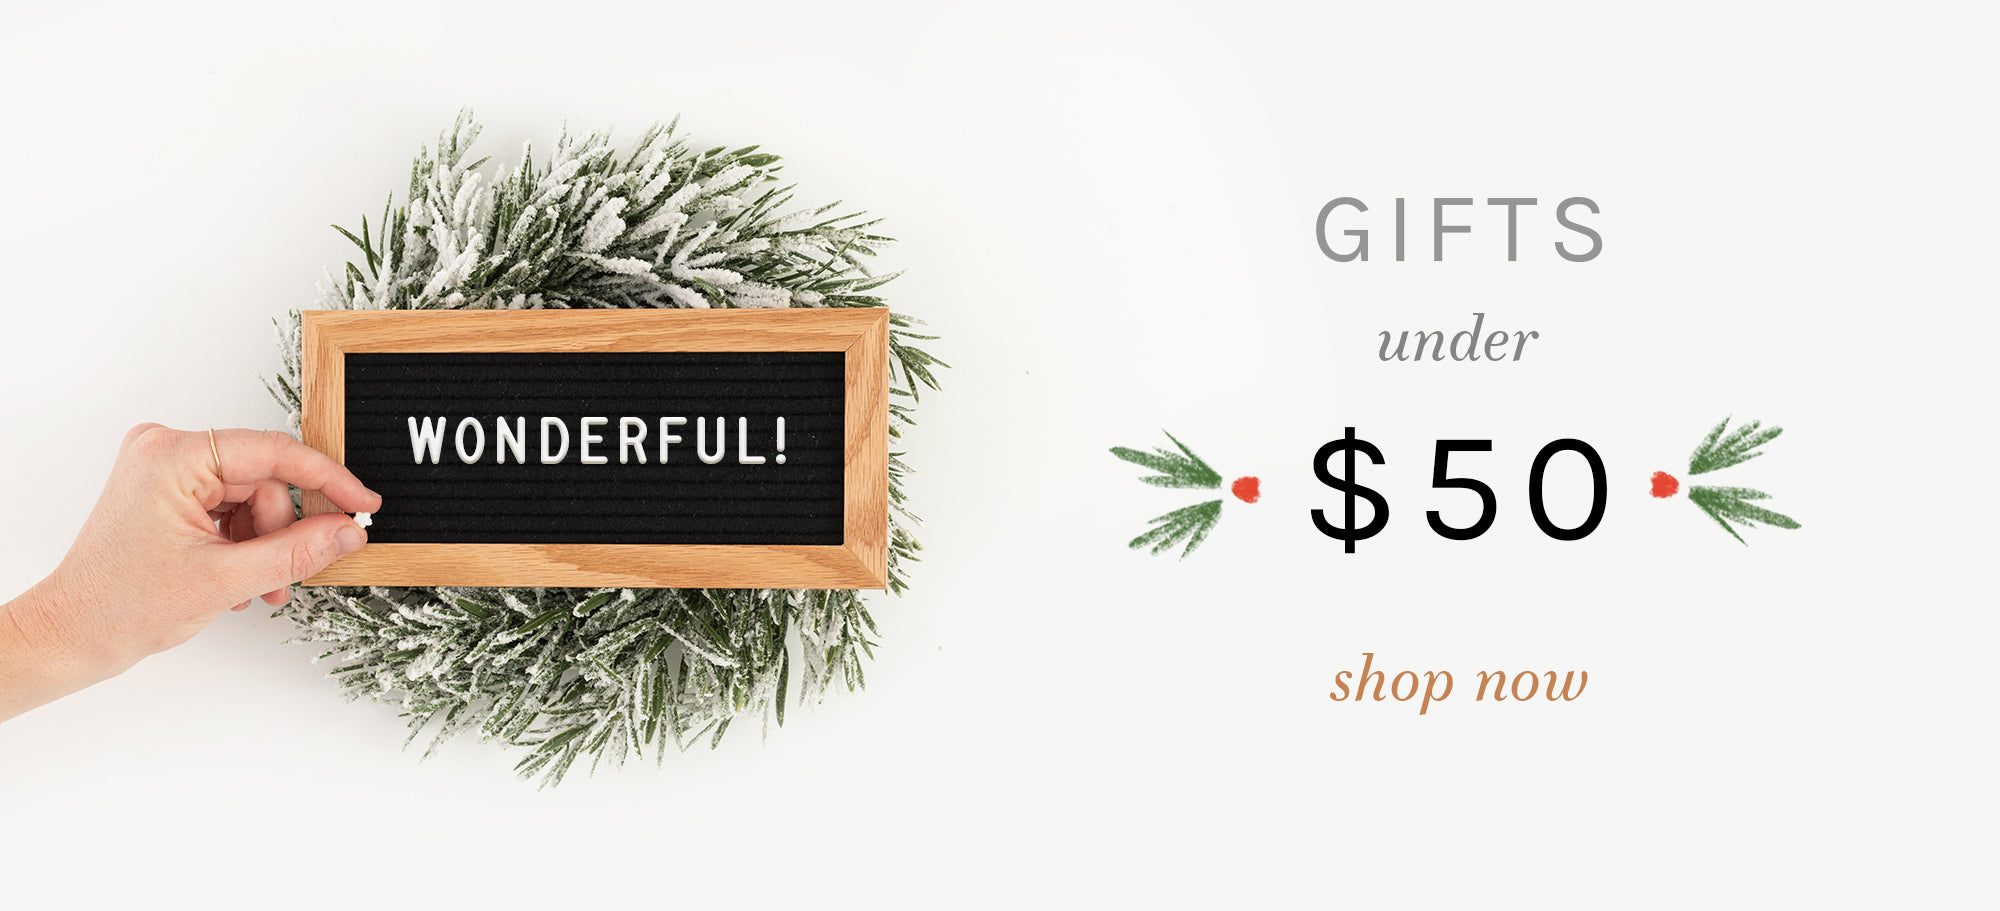 Gift Guide 2020: Under $50